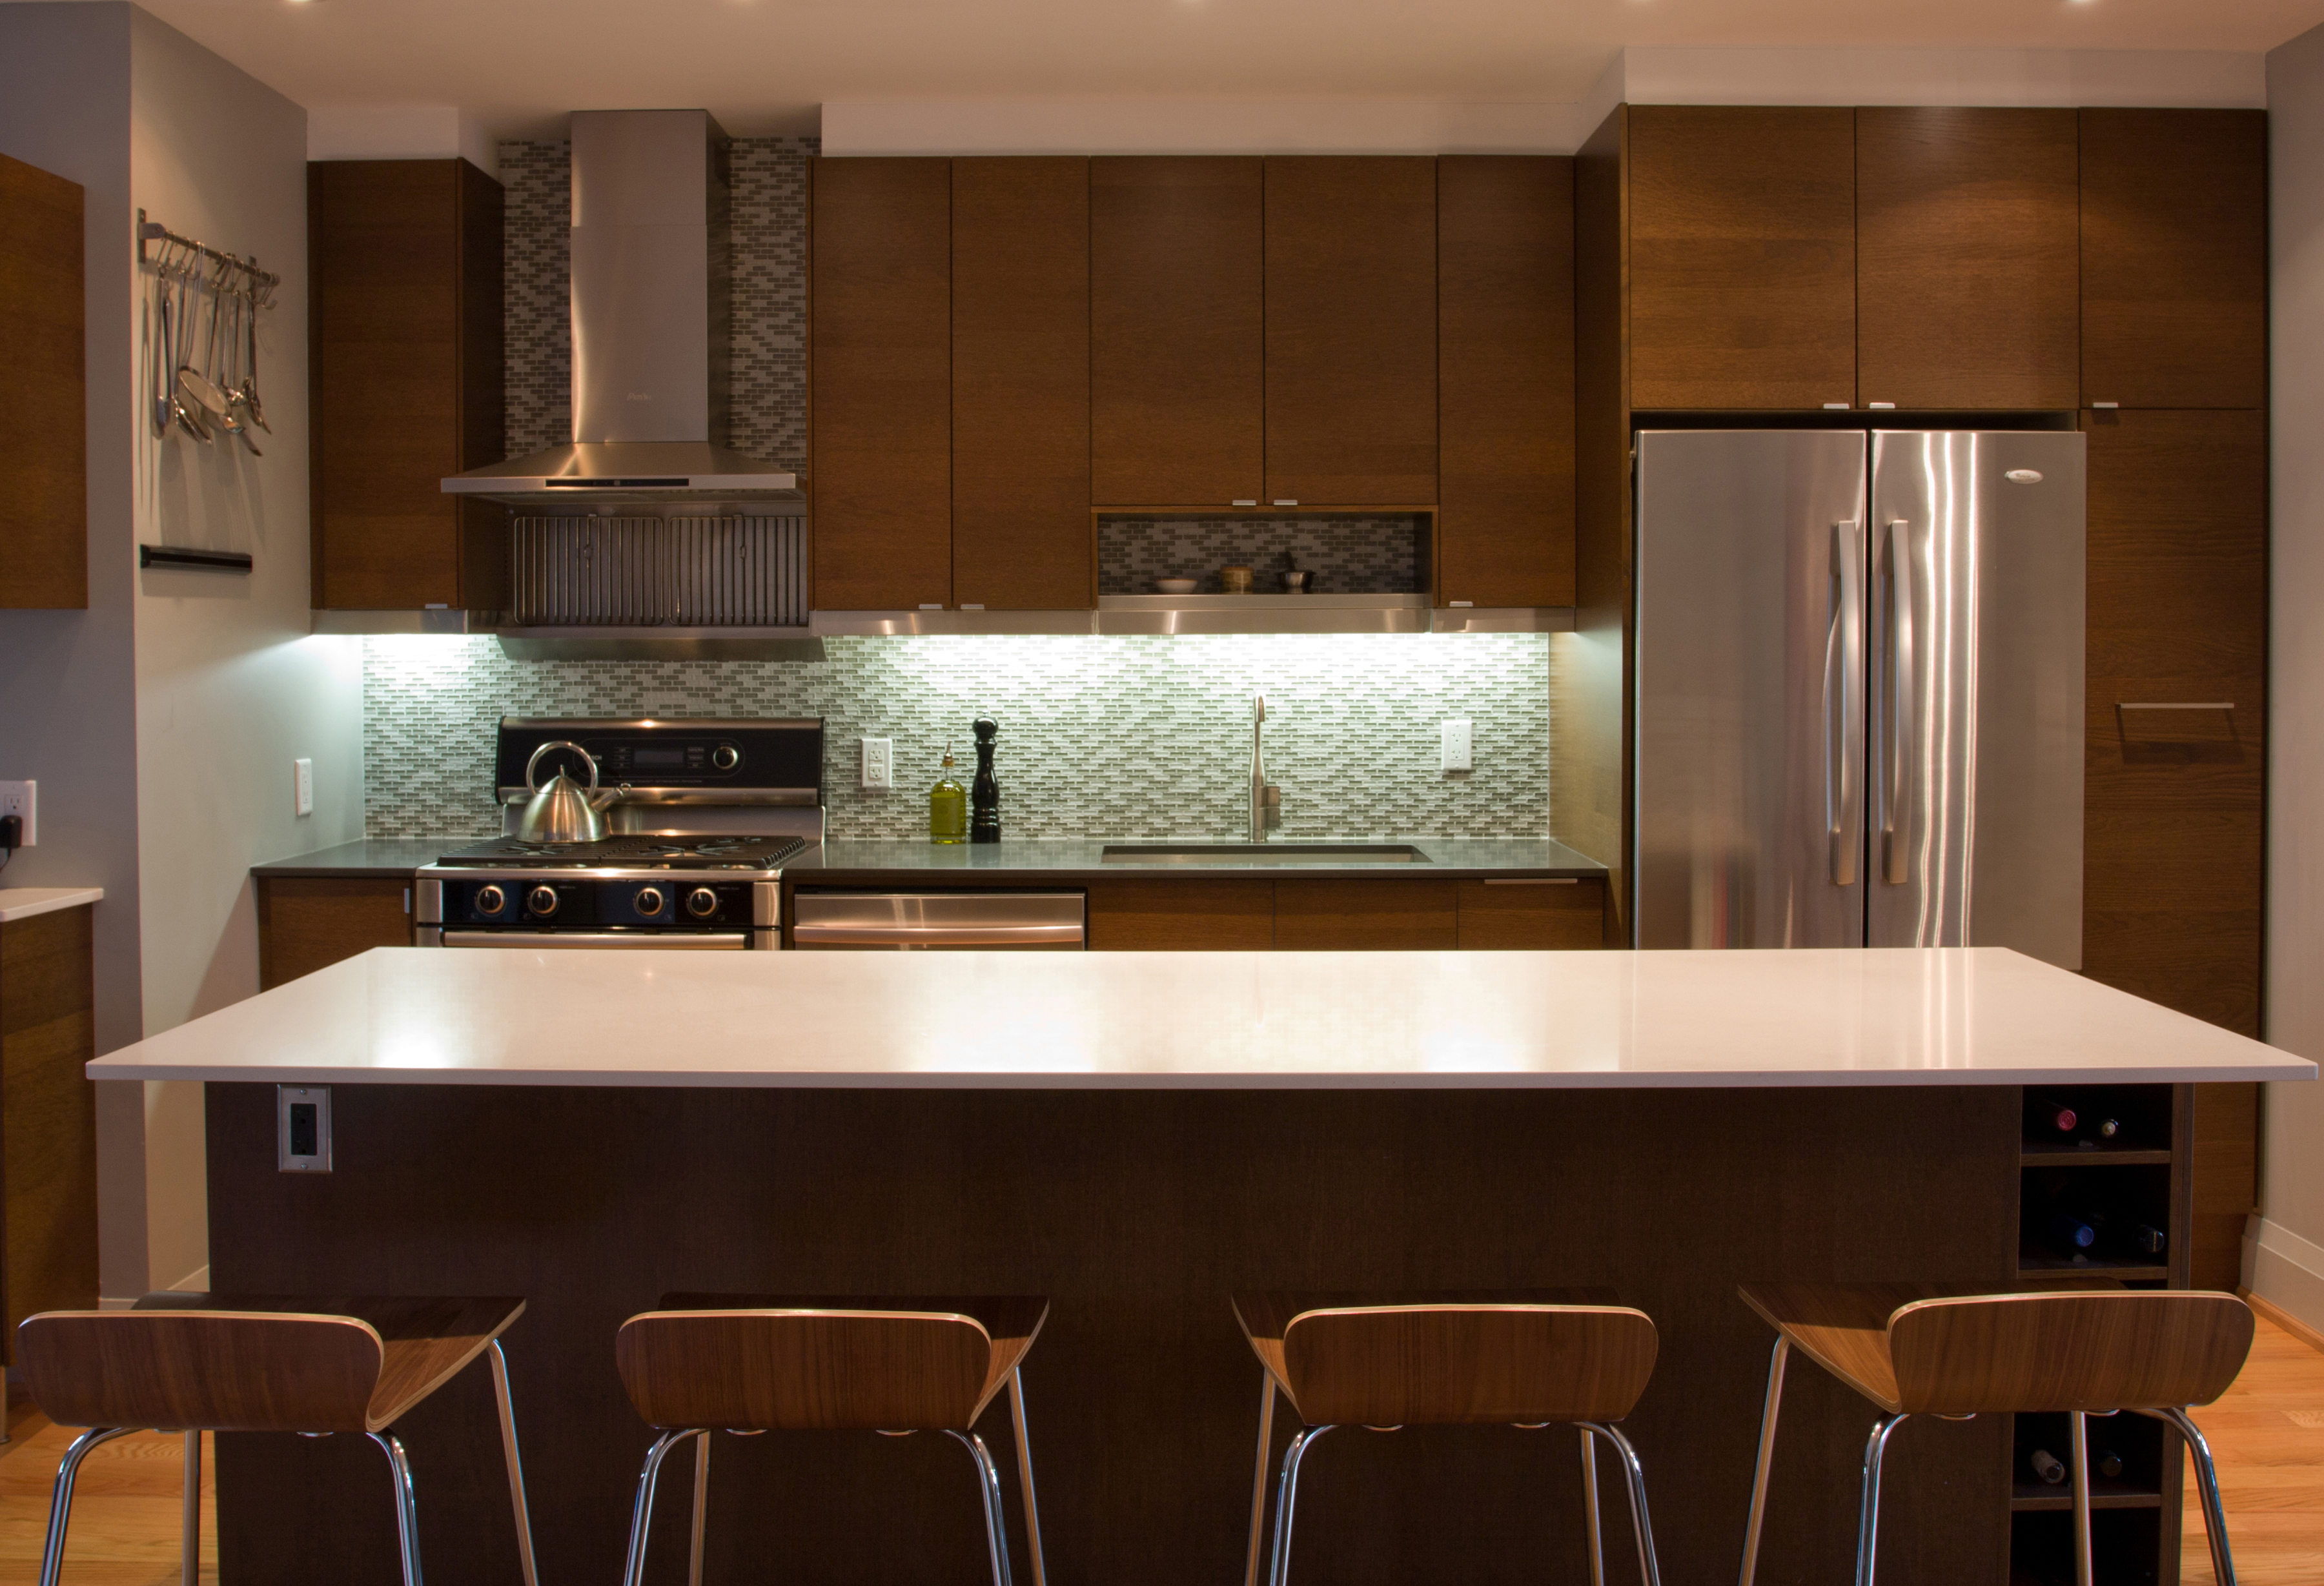 Choosing New Kitchen Cabinets? Here's What You Need To Know